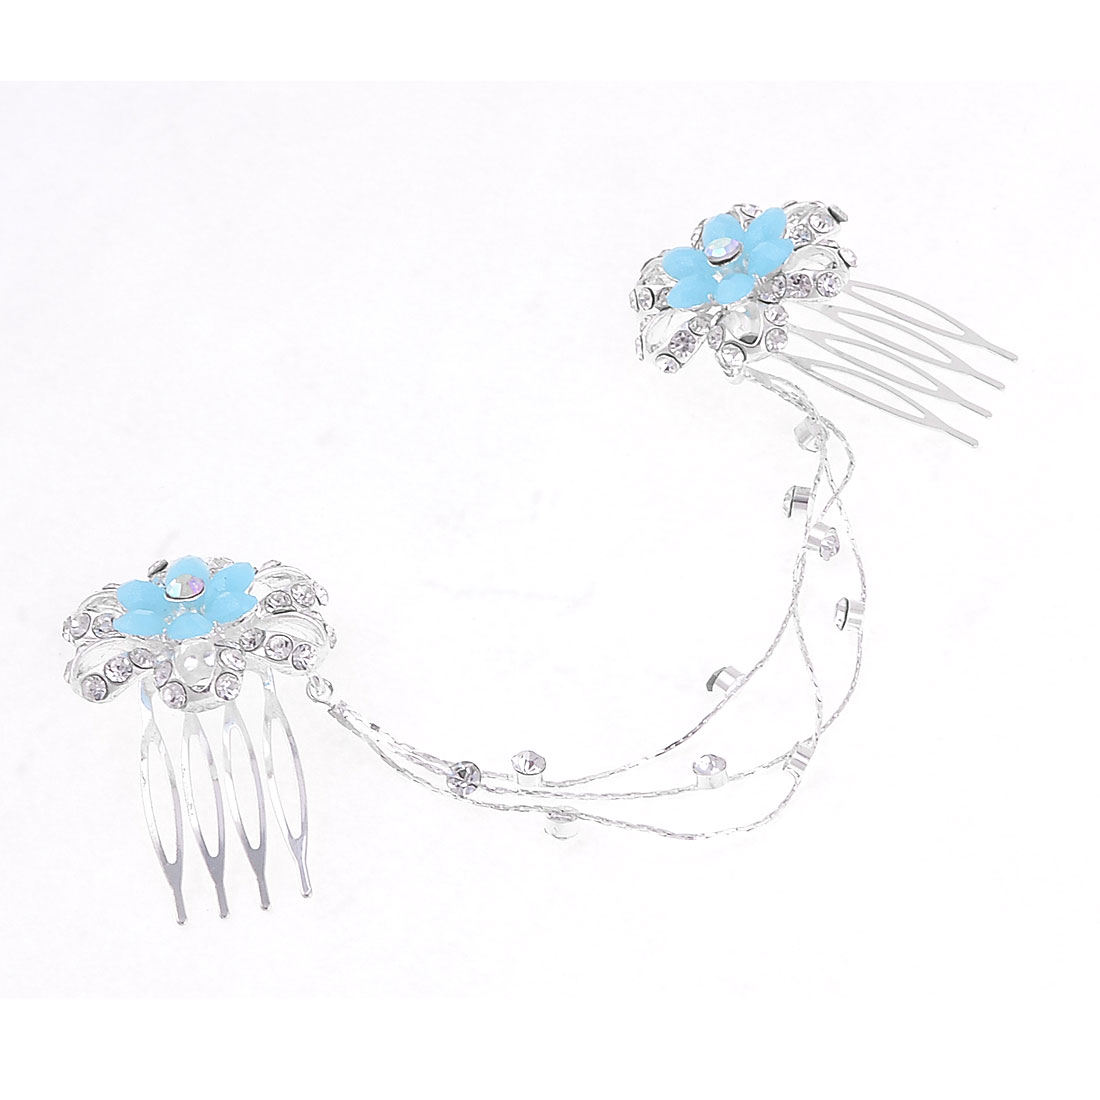 2 in 1 Glittery Rhinestones Inlaid Metal Flower Hair Prong Clip Comb for Women